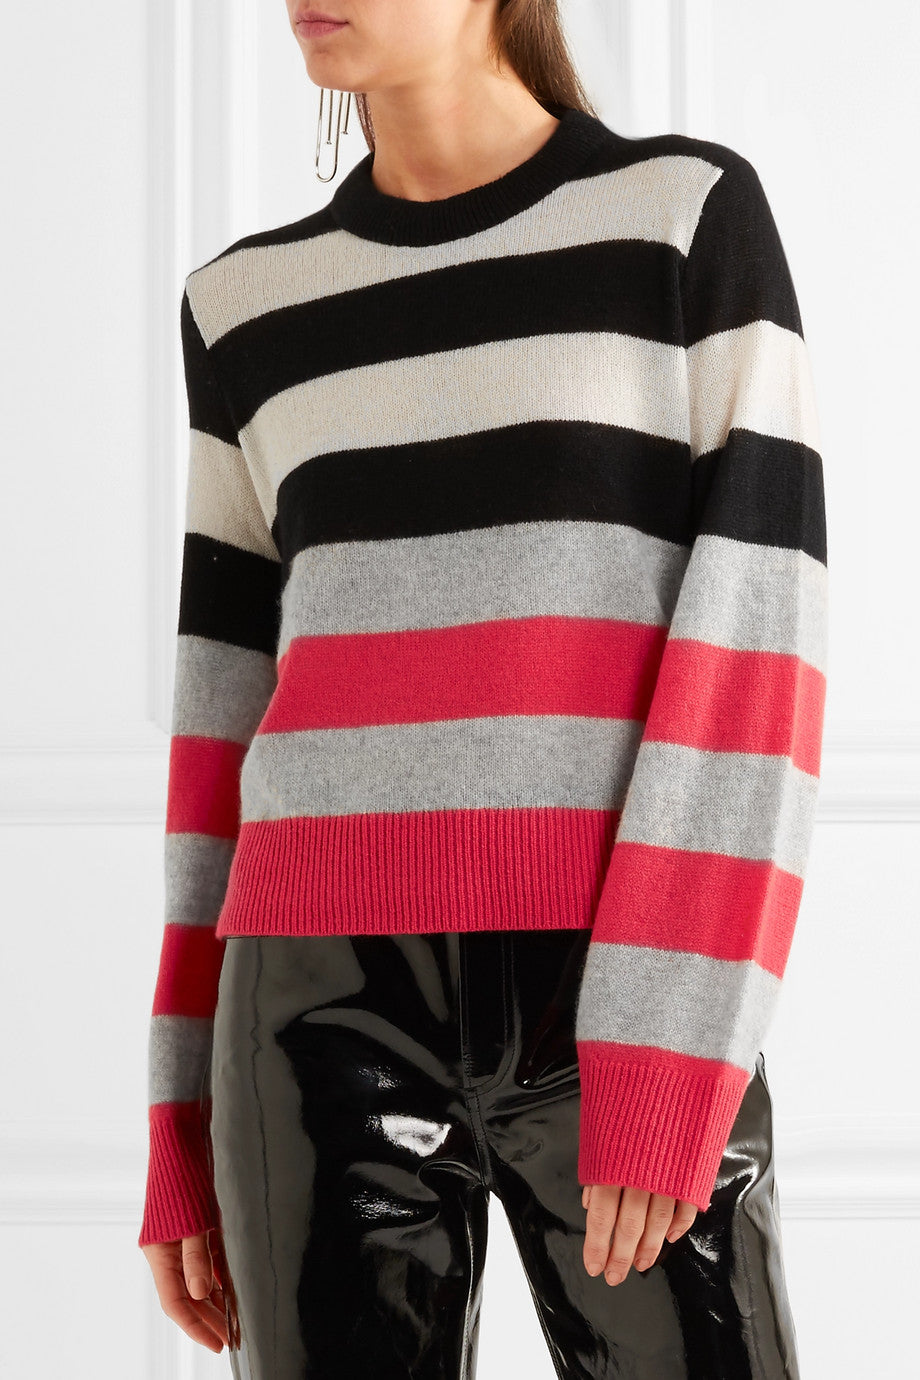 RAG & BONE - ANNIKA STRIPED CASHMERE SWEATER - SZ L - NEW WITH TAGS